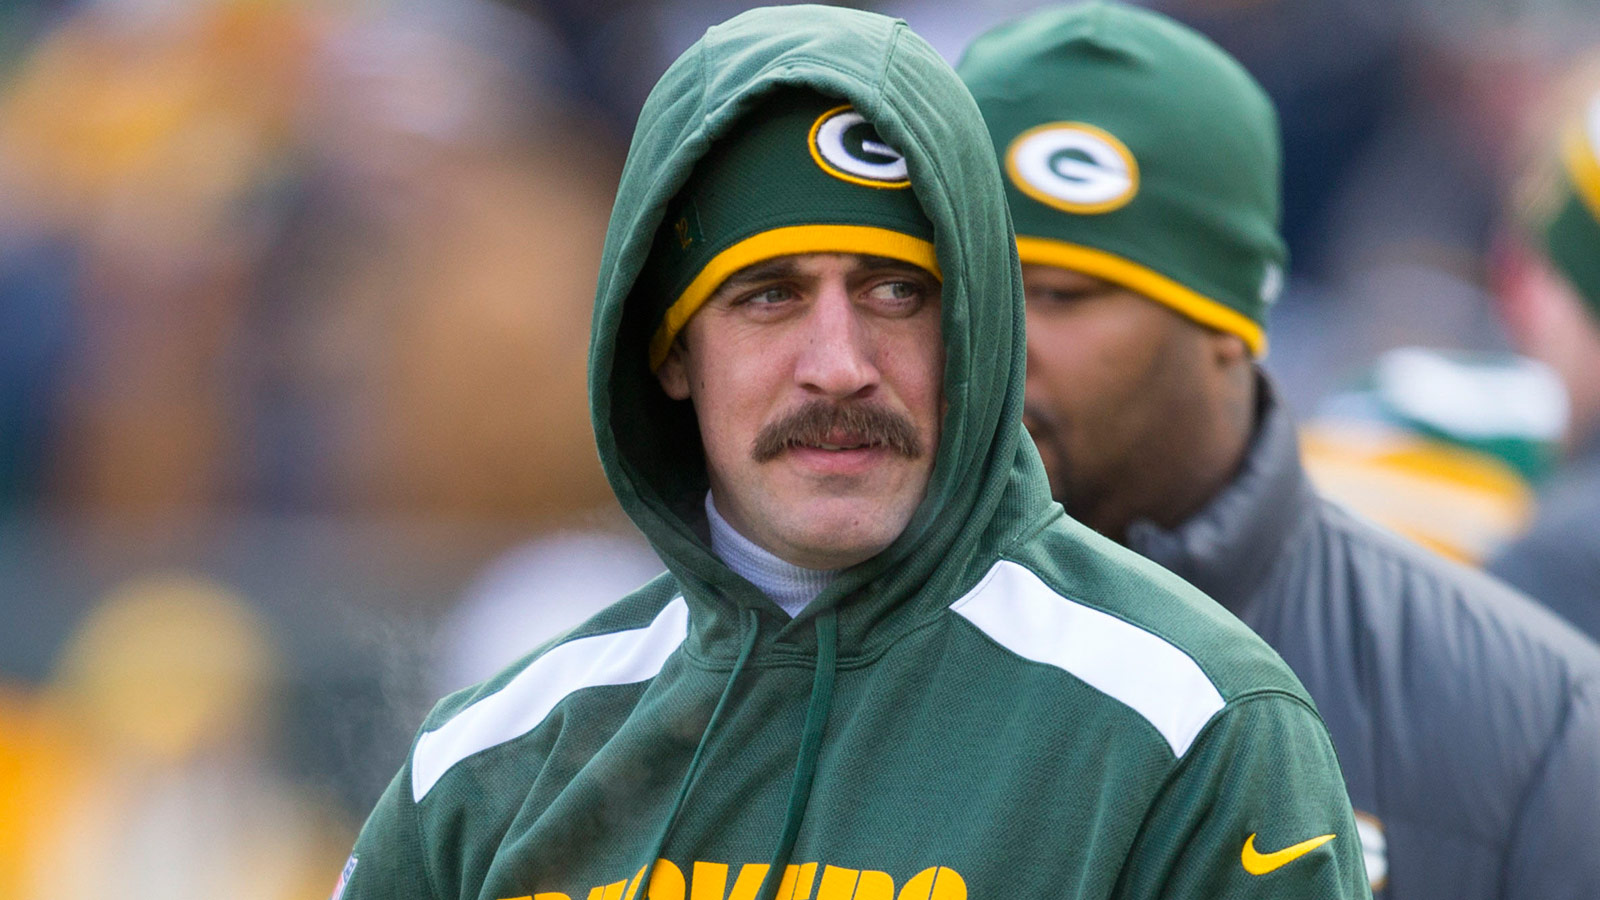 Aaron Rodgers Lookalike is Tom Wrigglesworth